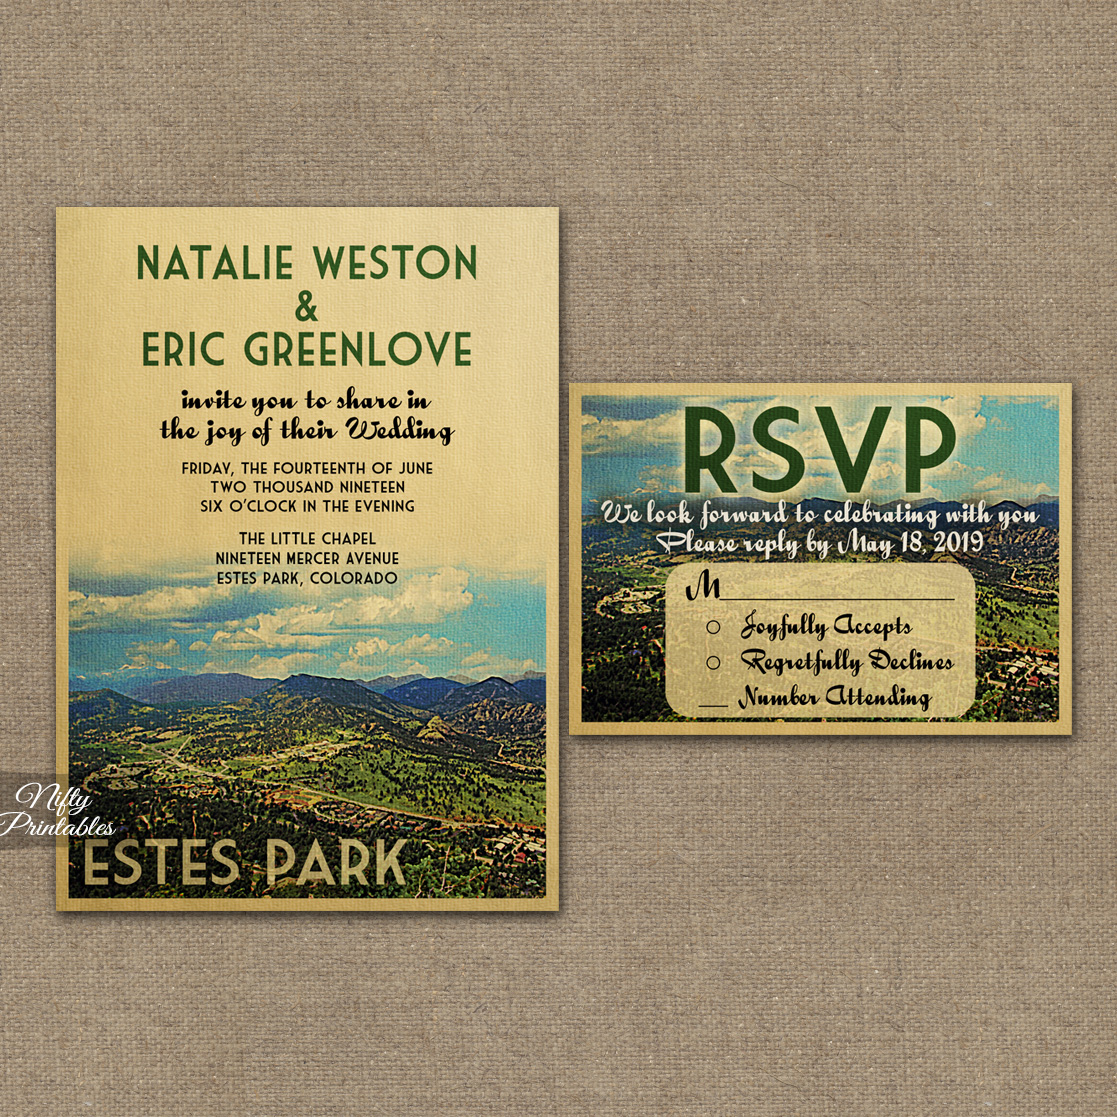 Estes Park Colorado Wedding Invitations VTW